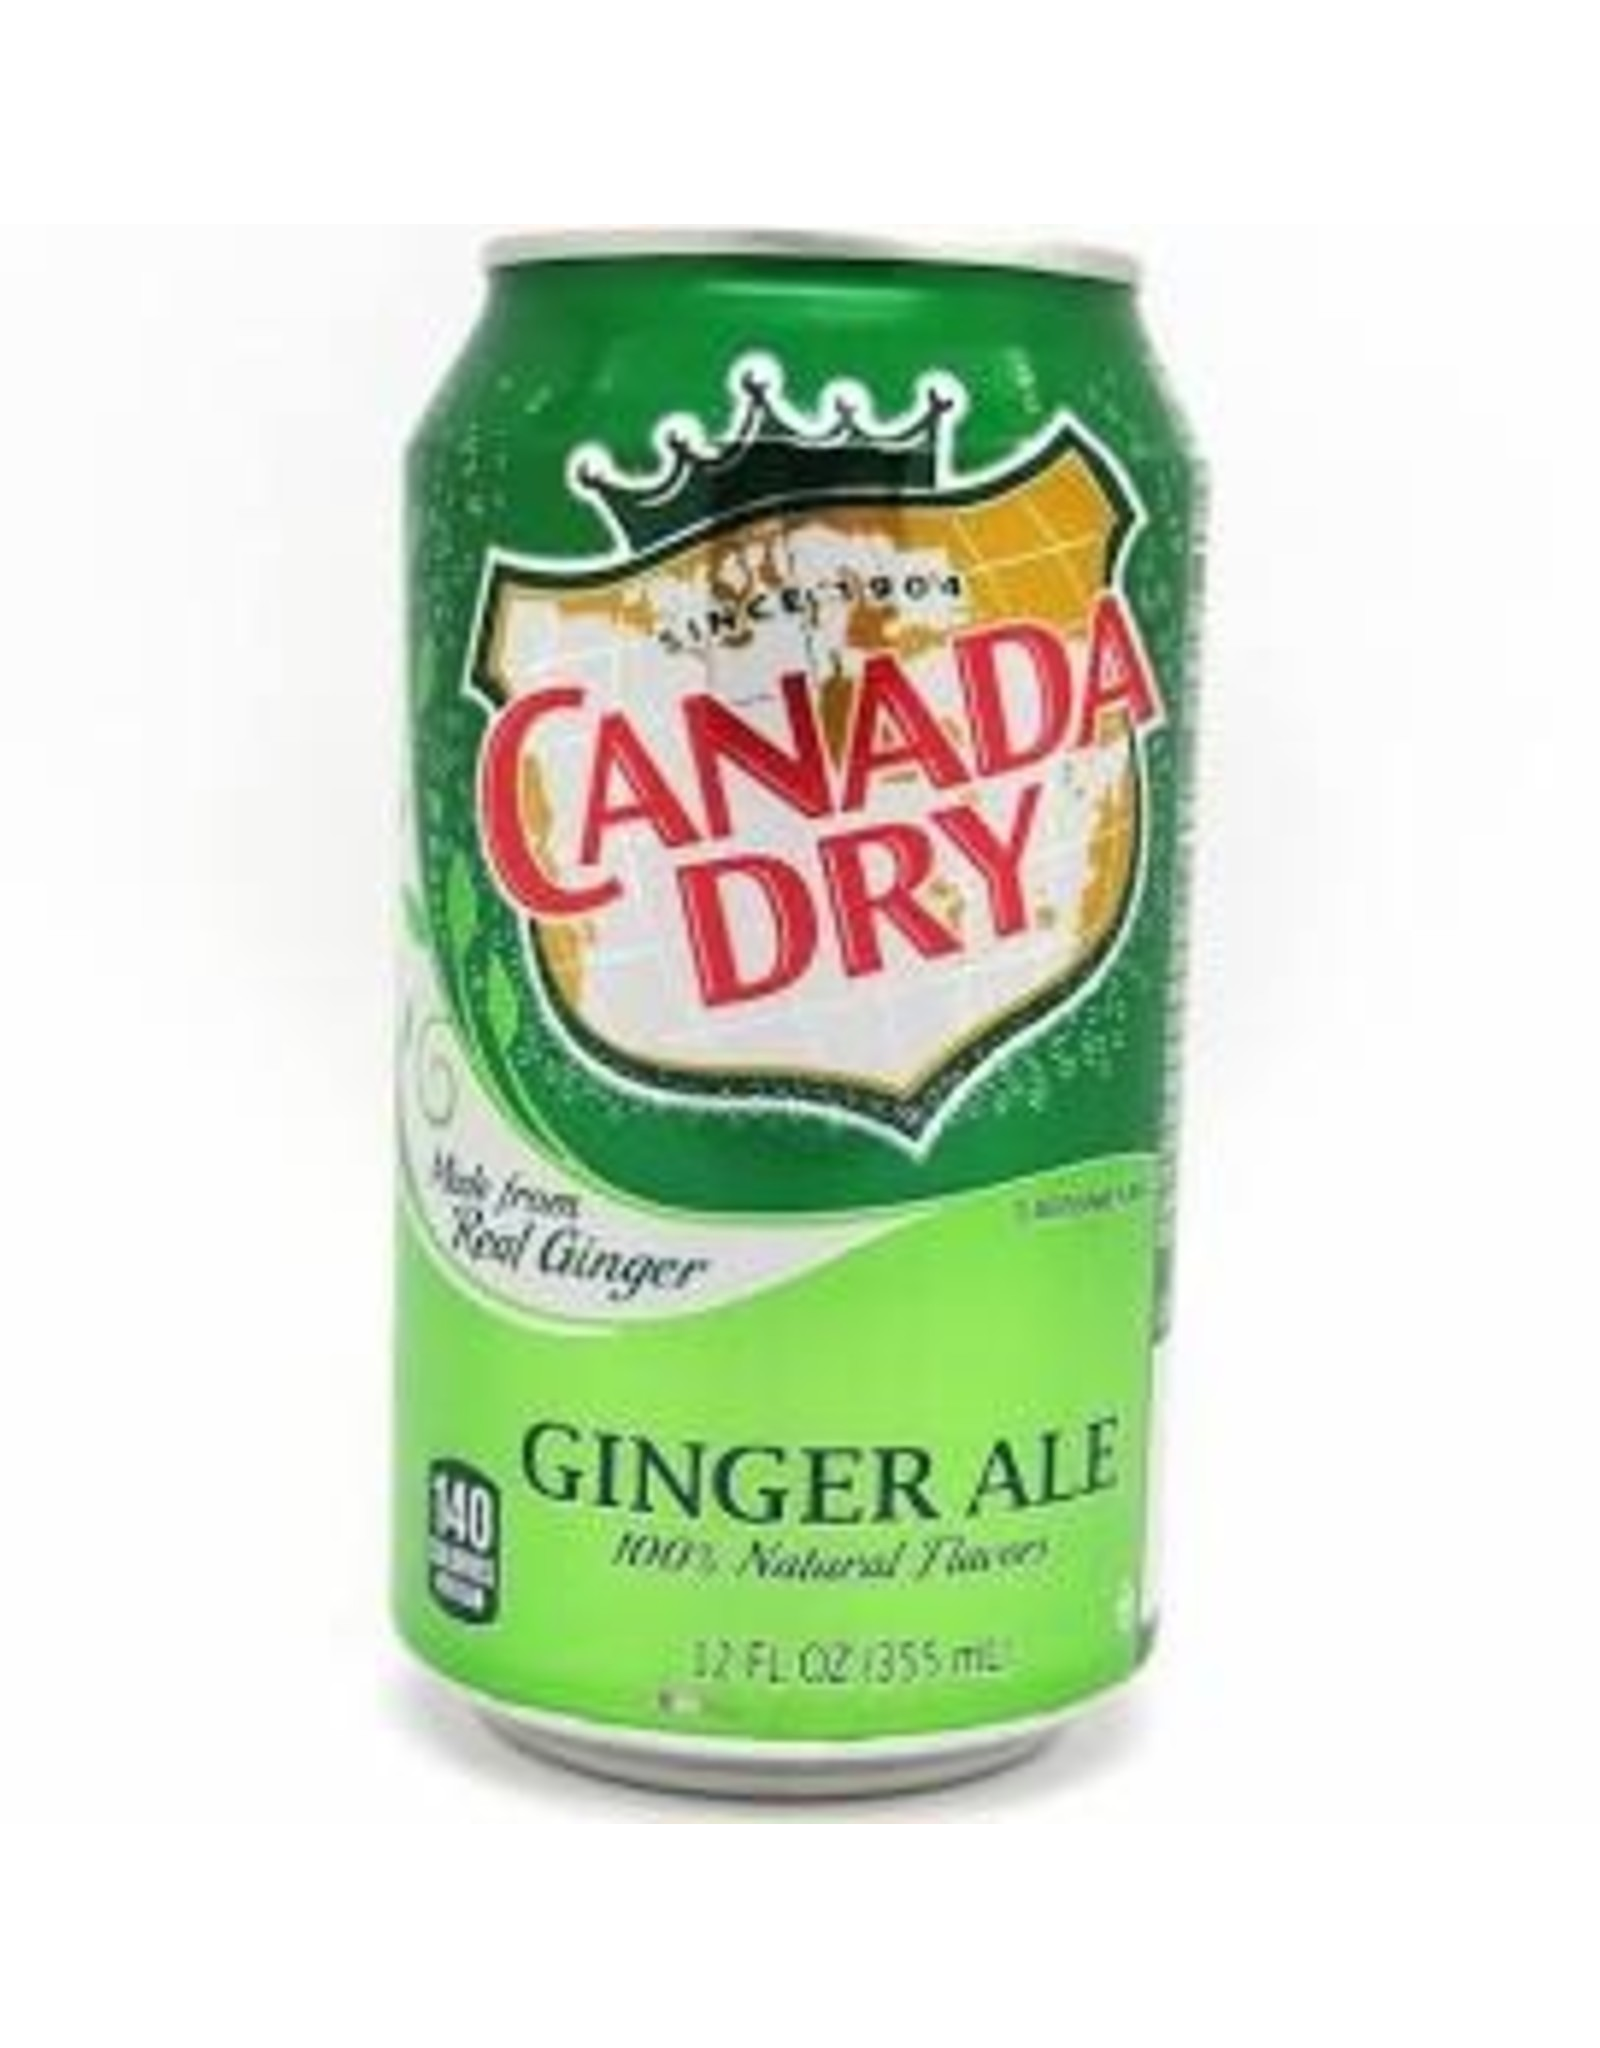 Canada Dry Ginger Ale 12o